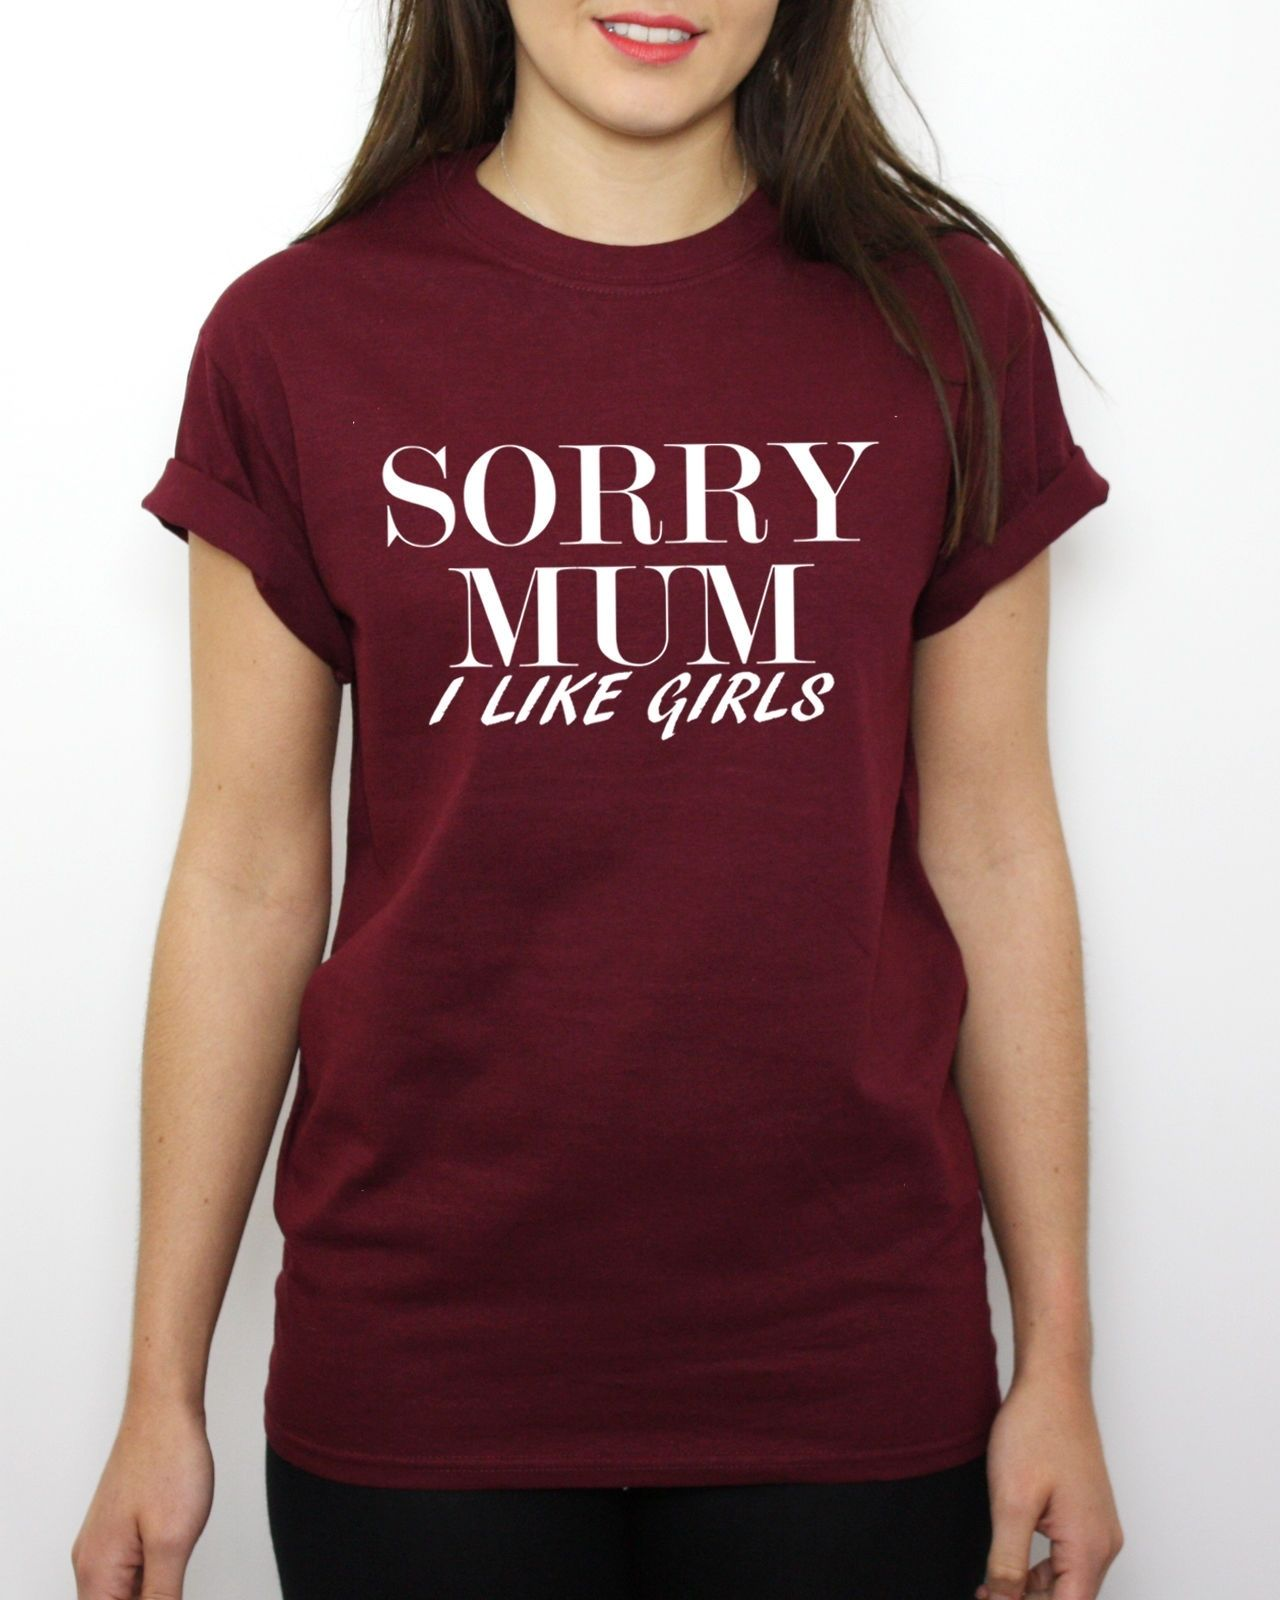 ef1fe816d Sorry Mum I Like Girls T Shirt Funny Homo Sexual Gay Lesbian Bi Tumblr  Pride, Main Colour Maroon